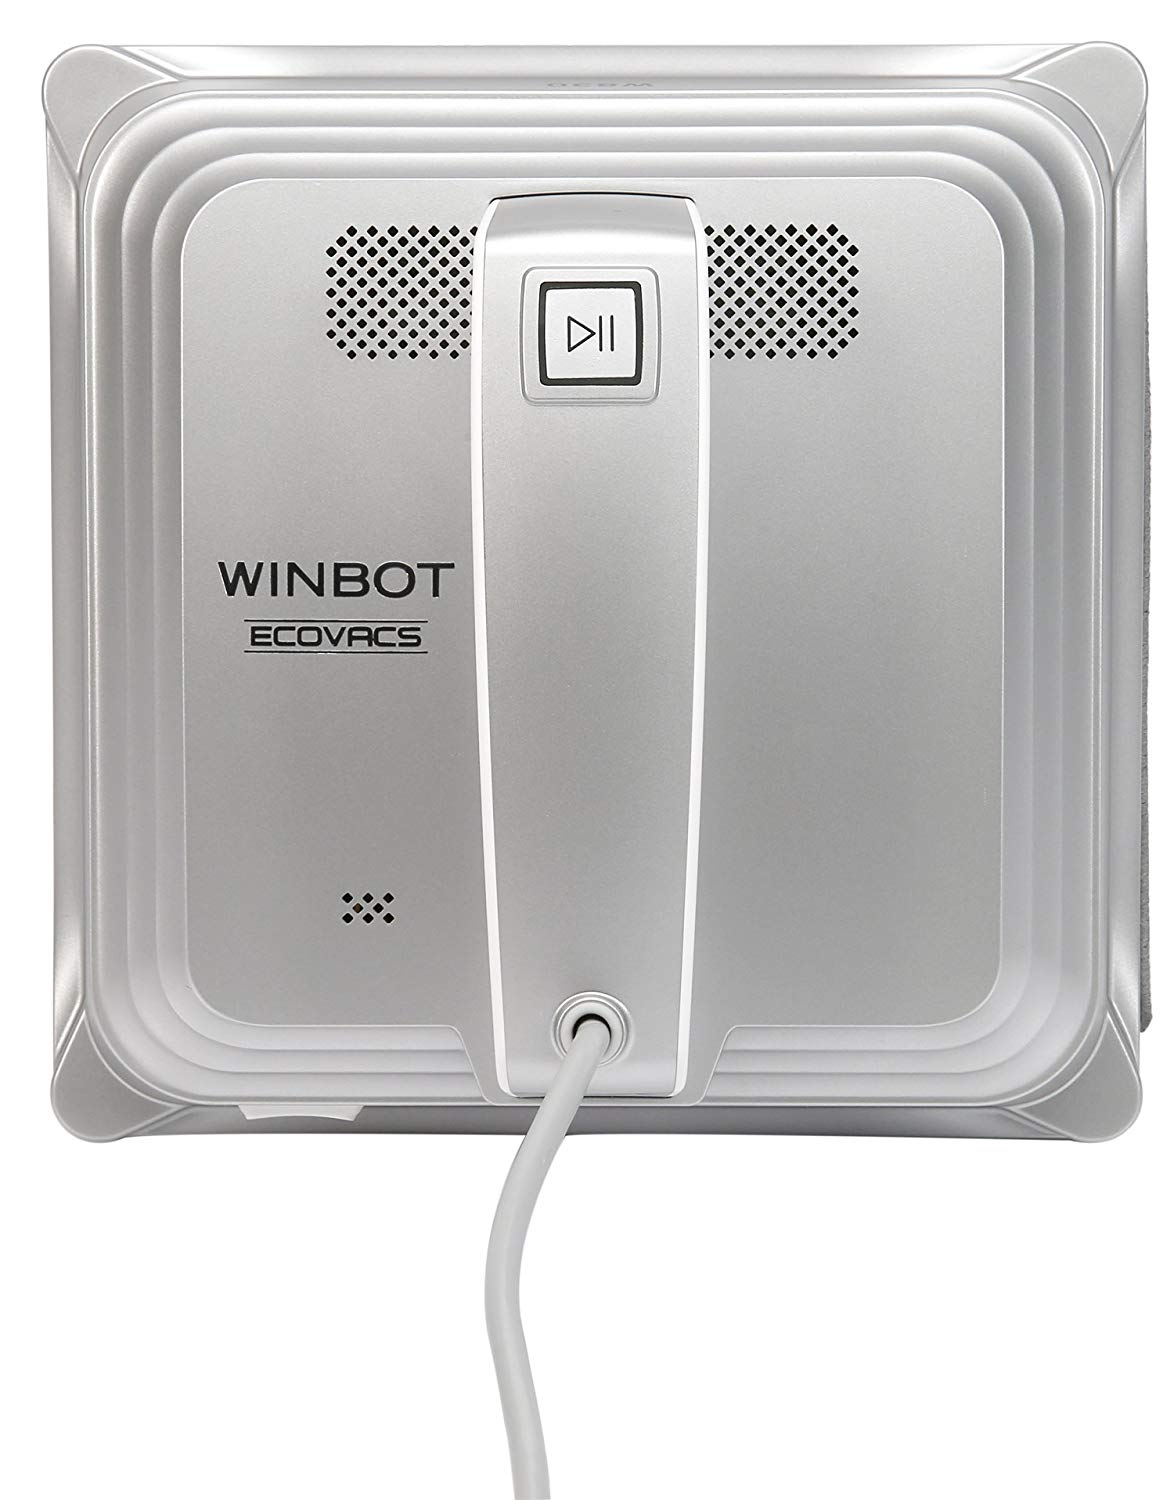 descripcion robot ecovacs winbot